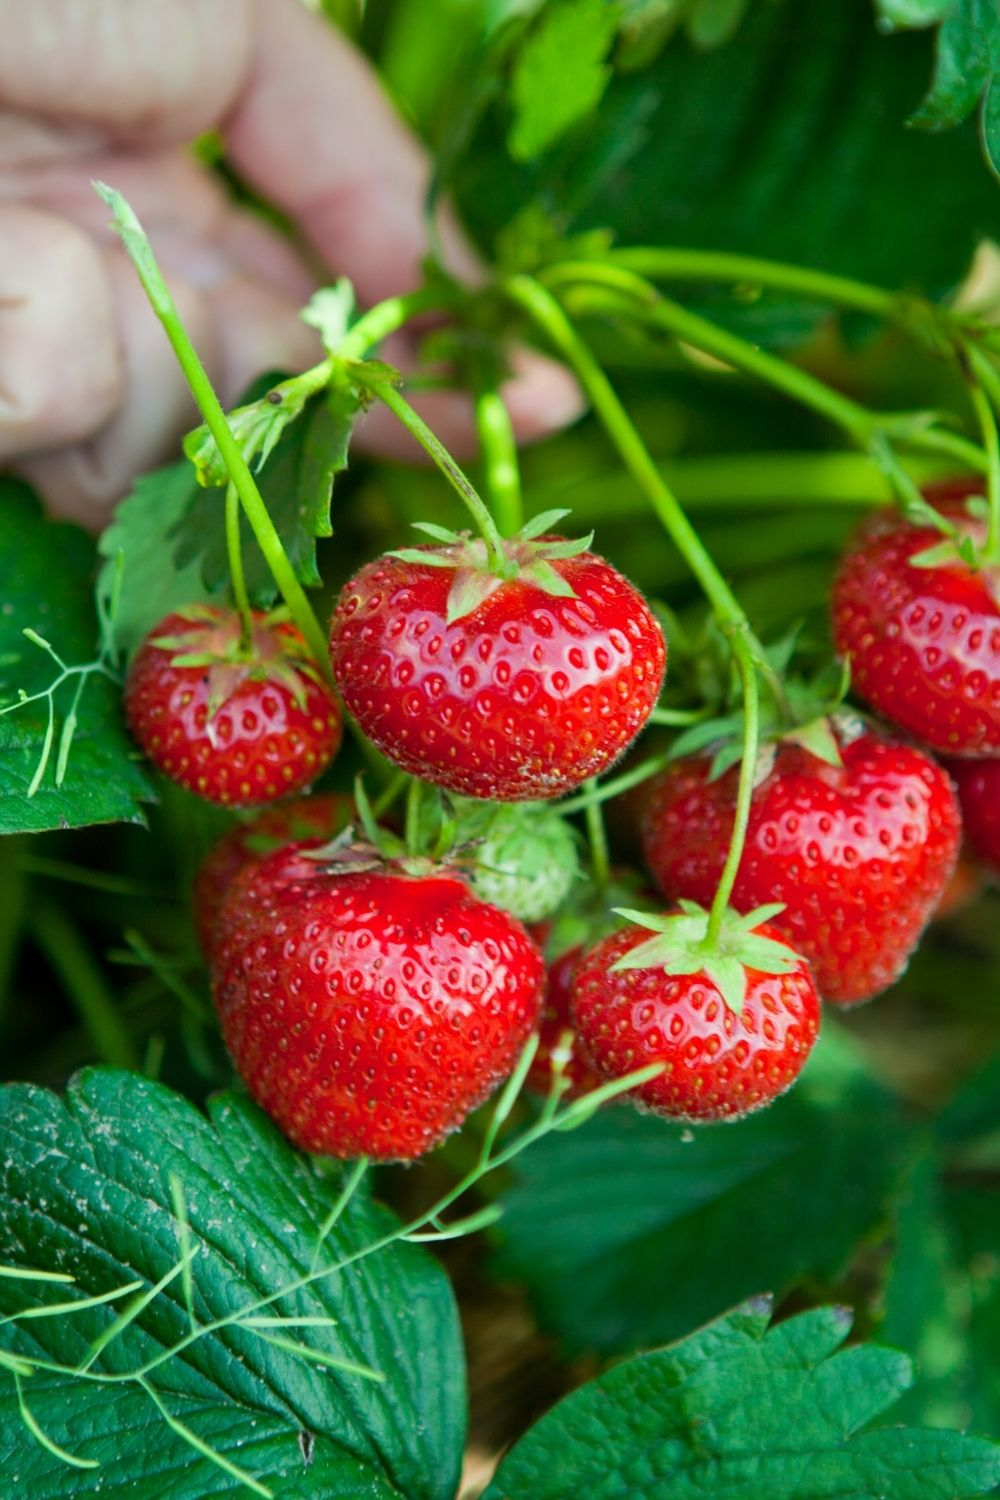 A hand supports a strawberry plant with several ripe, red strawberries on stems.